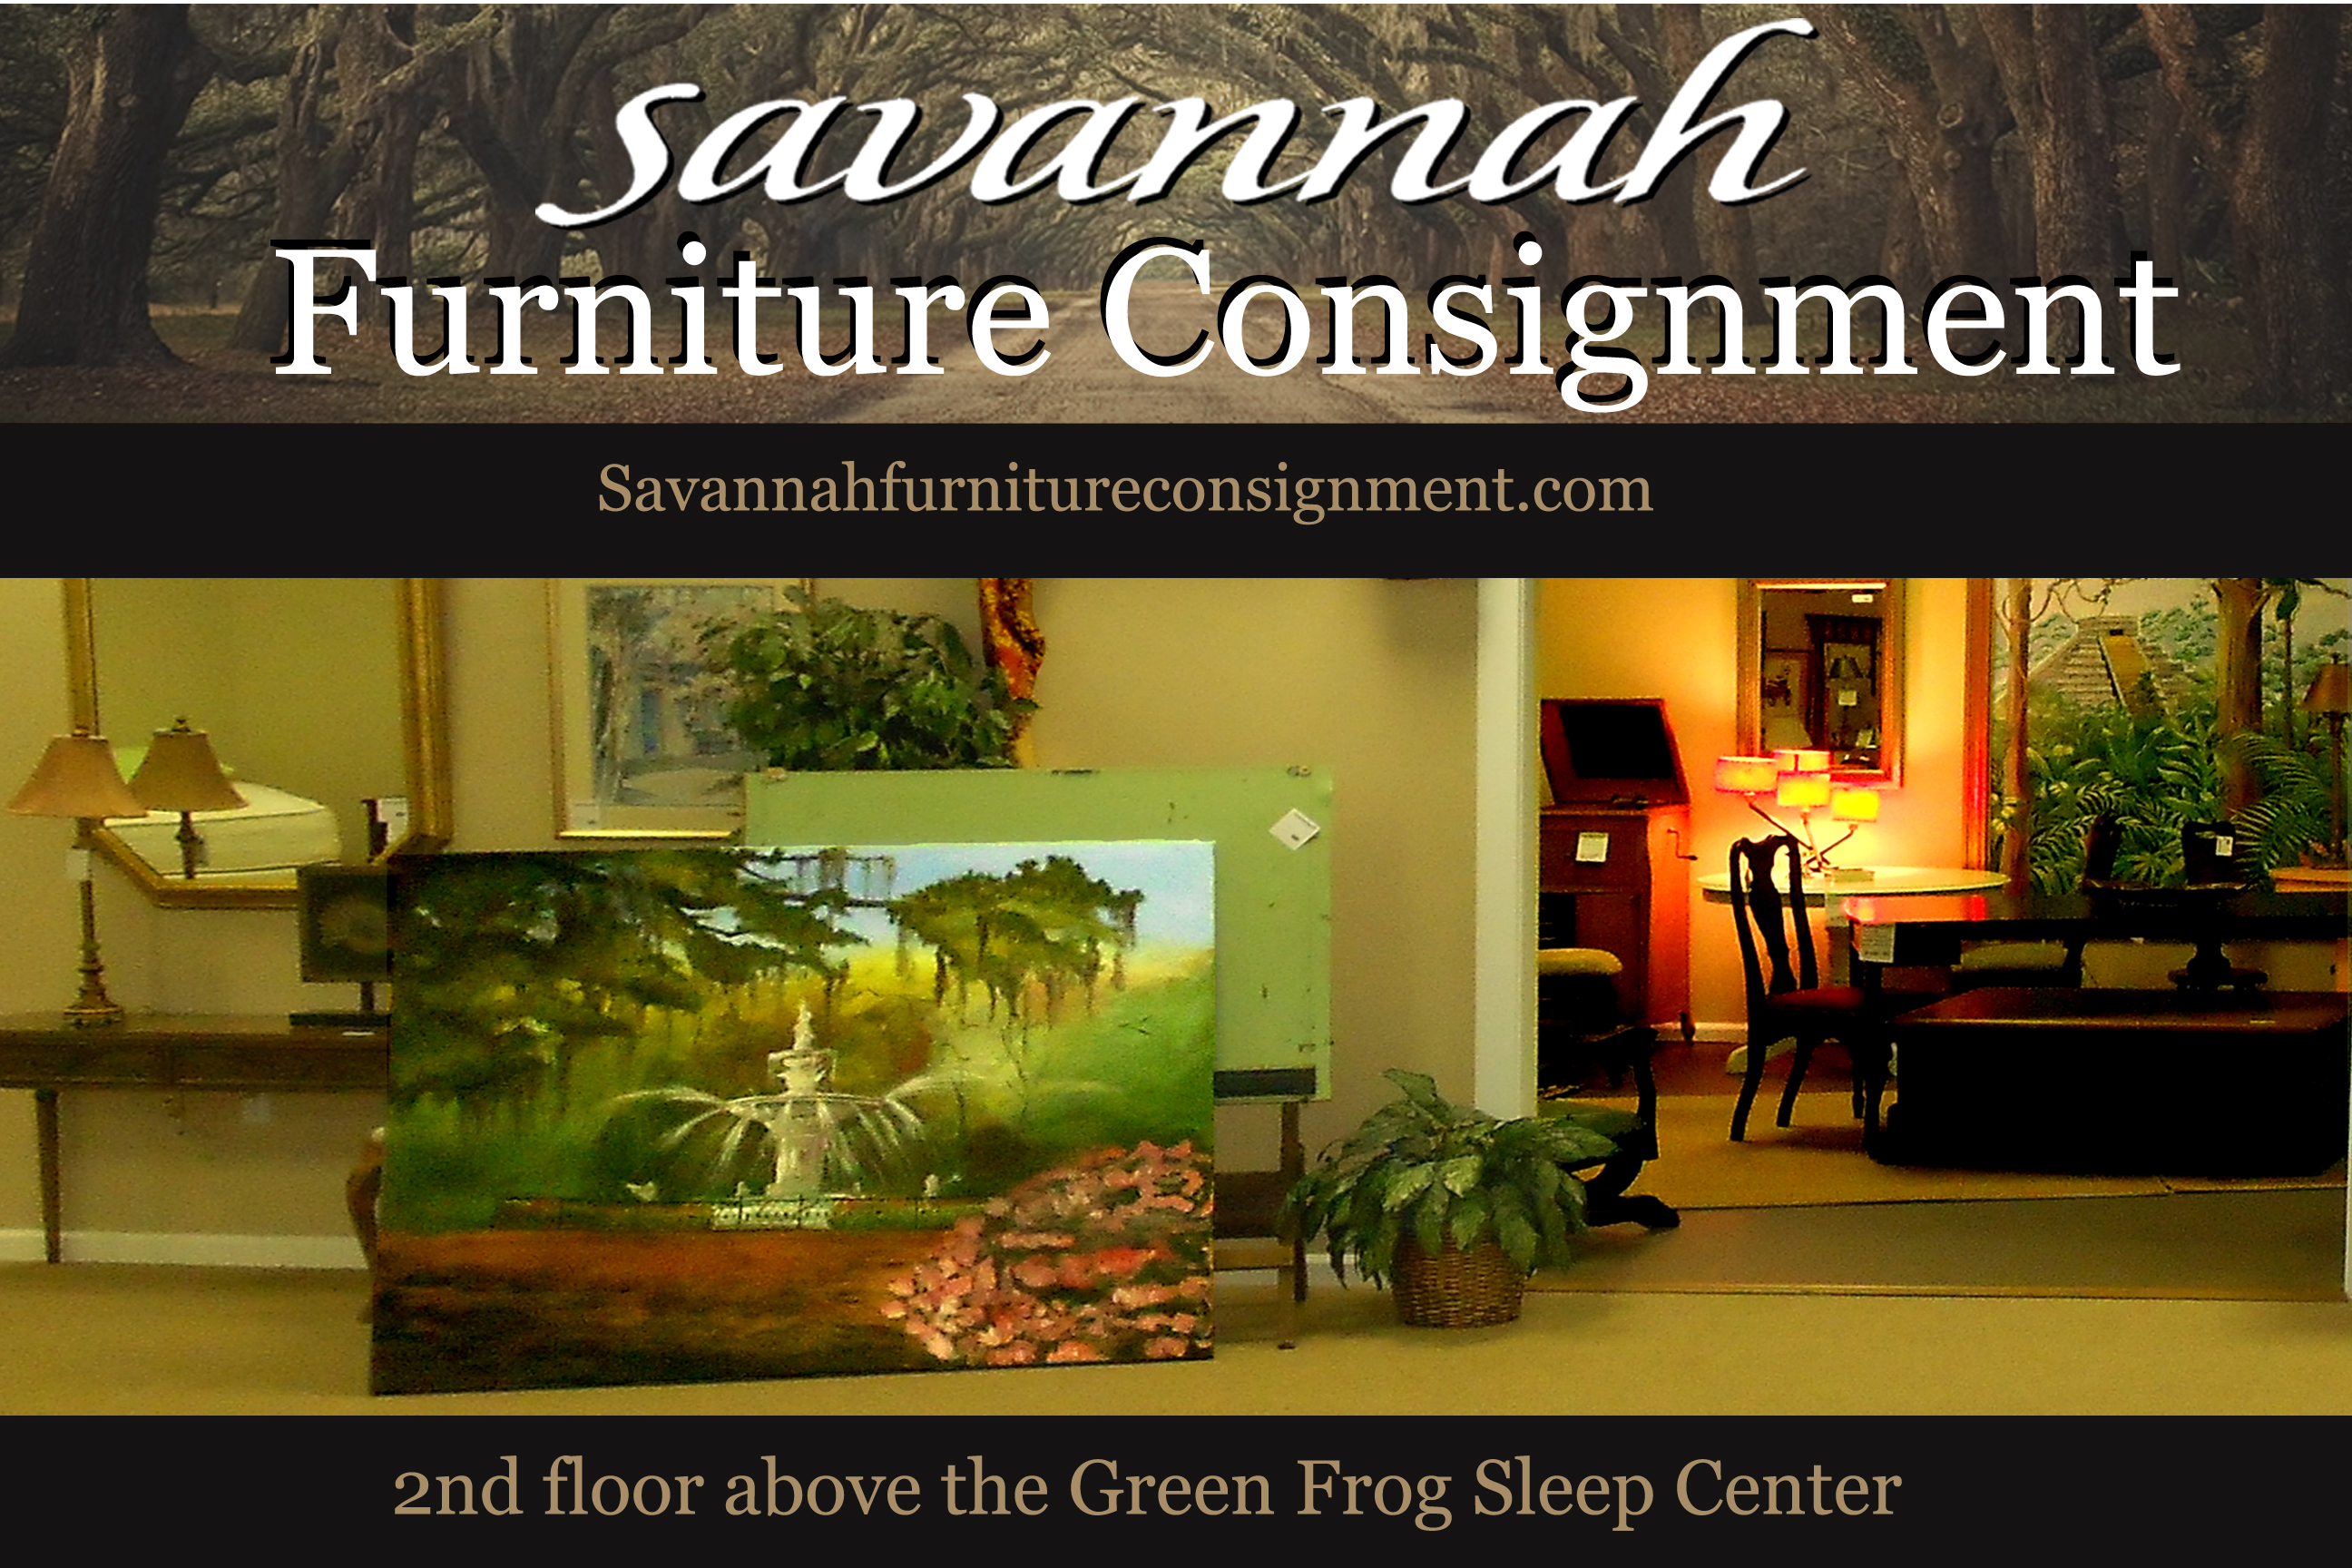 Recycled Consignment Furniture Savannah Furniture Consignment